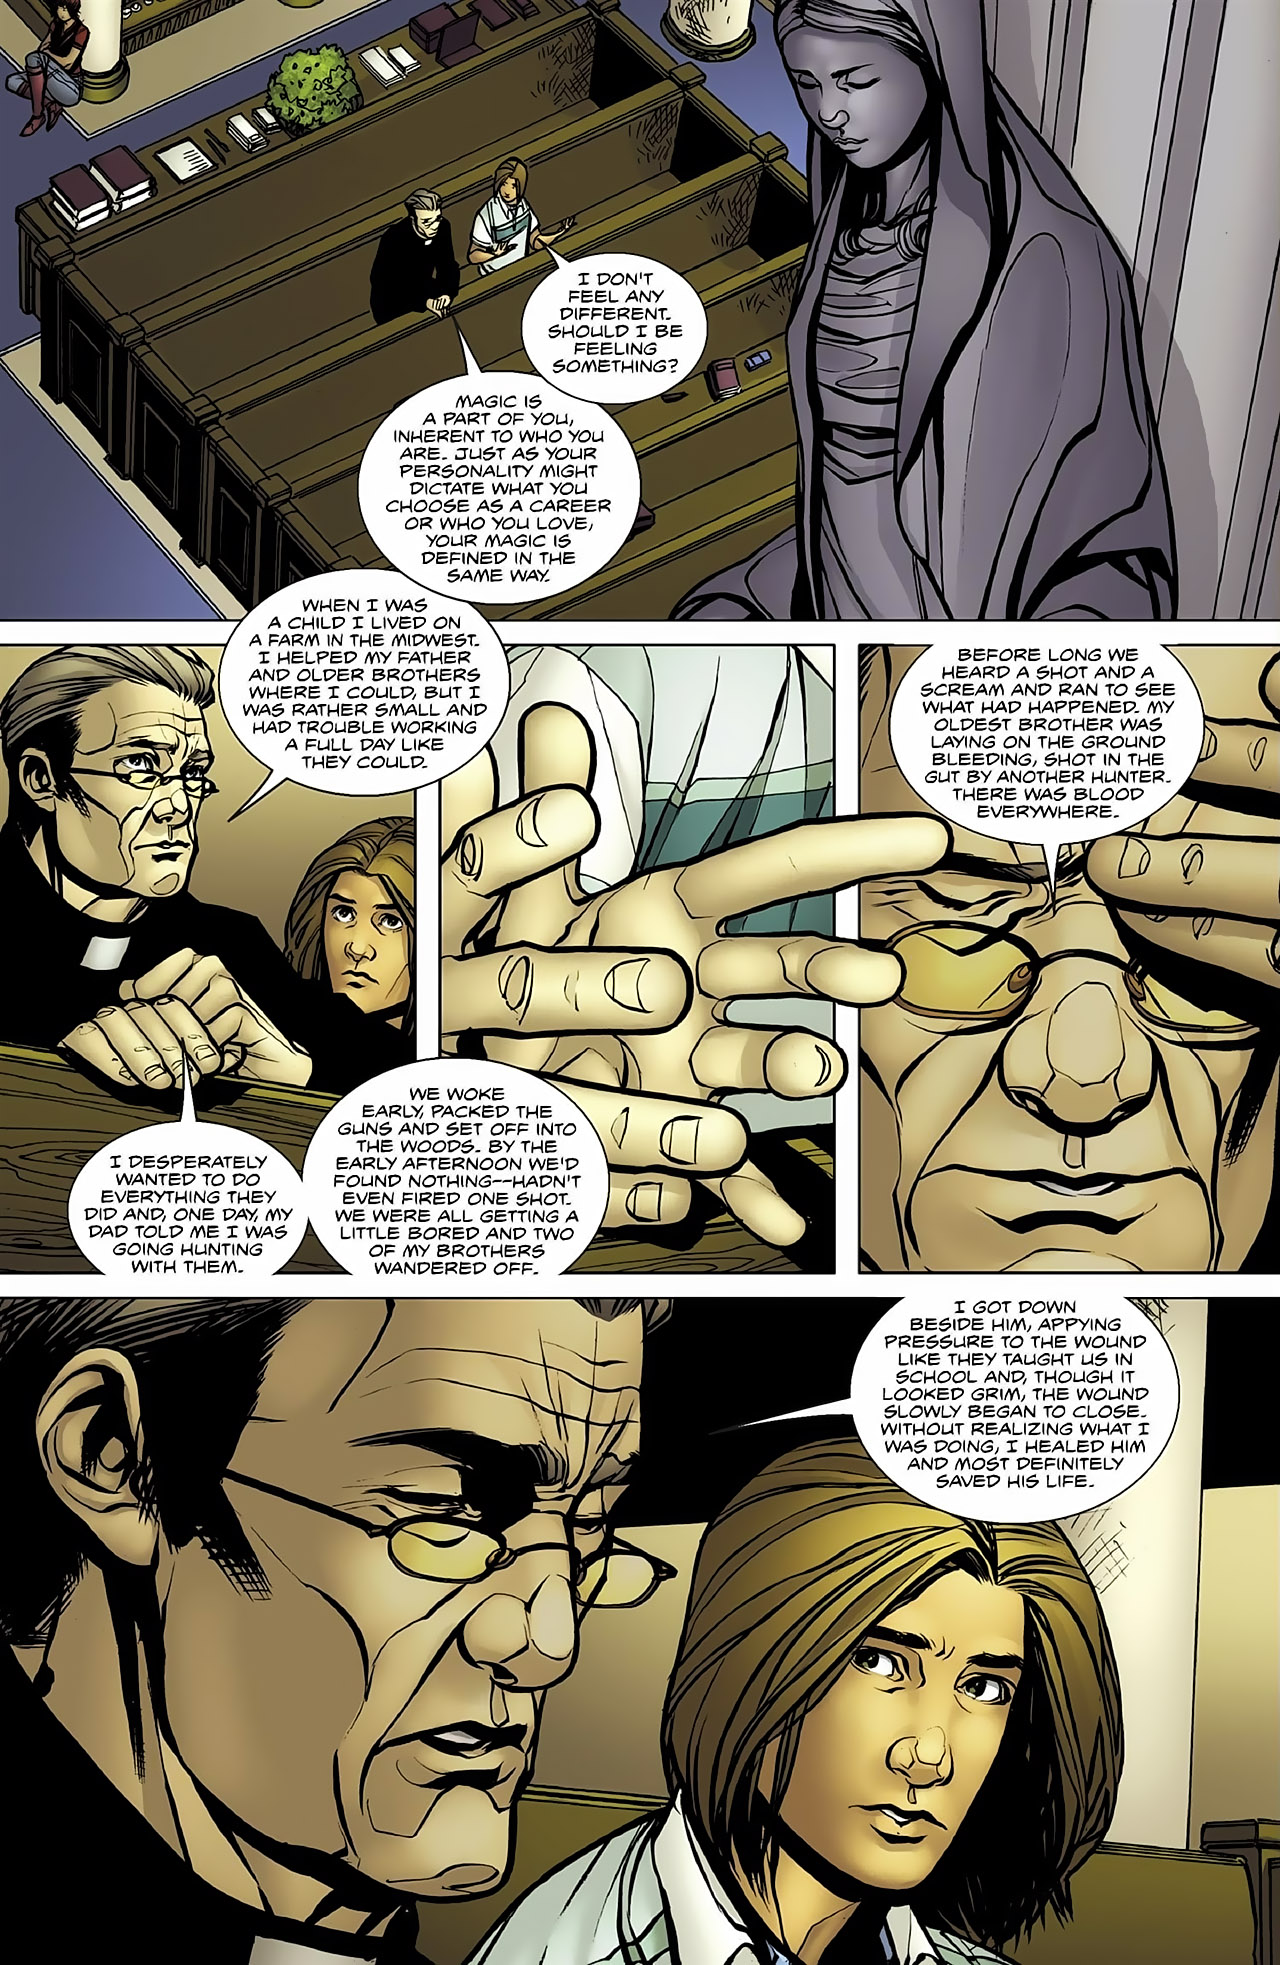 Read online Magus comic -  Issue #4 - 16